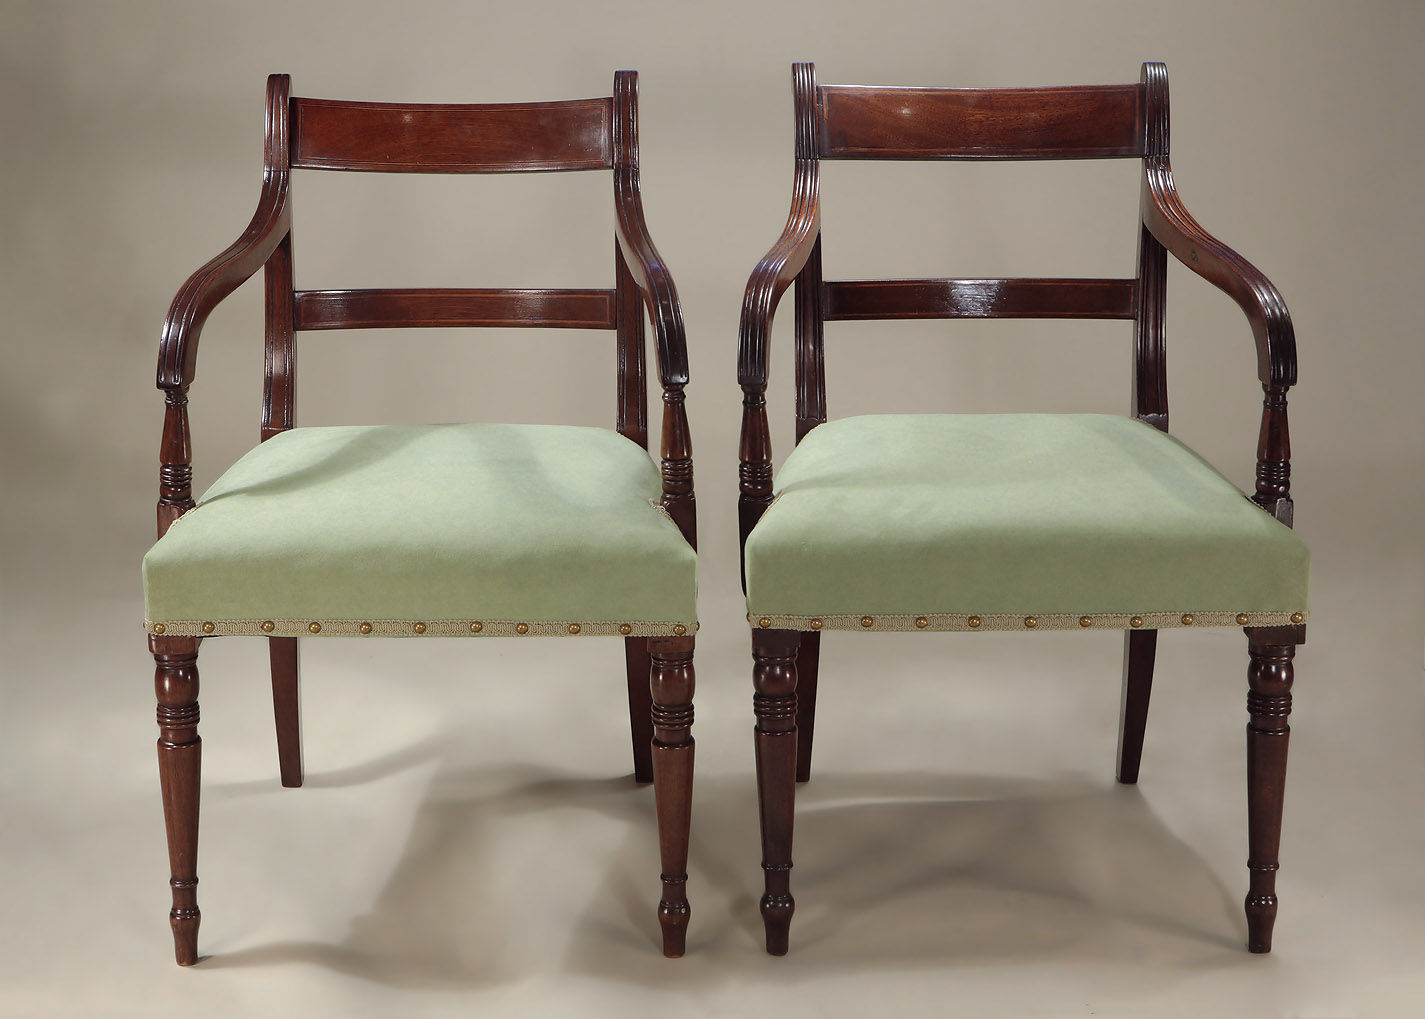 Set of 6 Late Georgian Inlaid Mahogany Sidechairs, showing the slight variance between the two armchairs